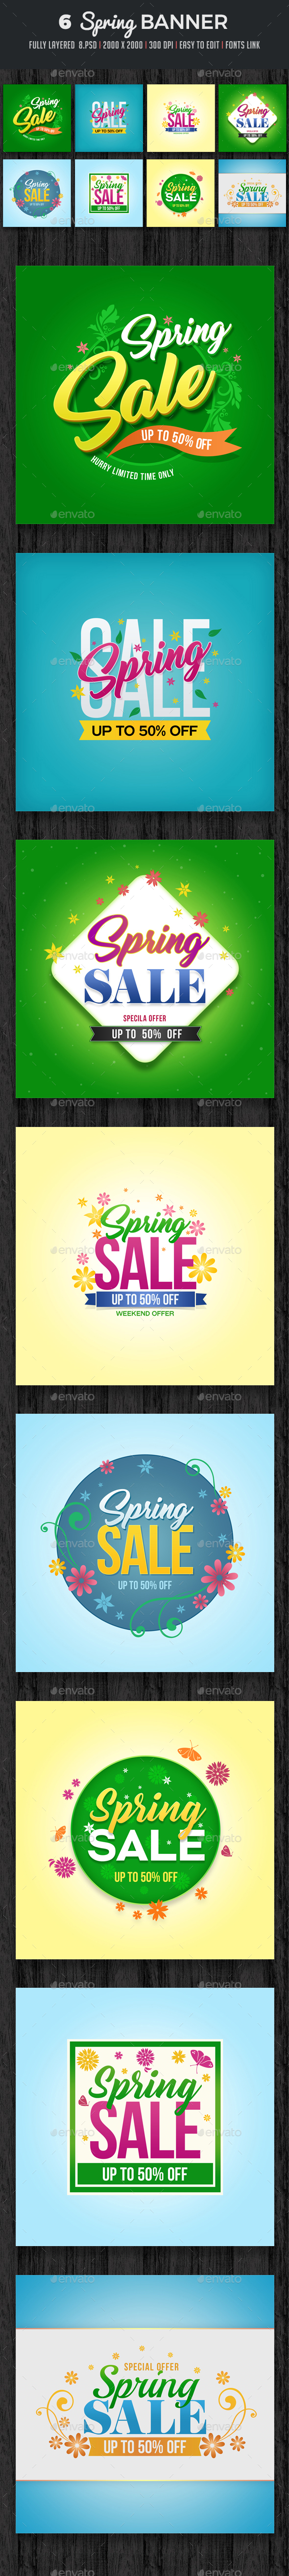 Spring Banner Set 2 - Banners & Ads Web Elements